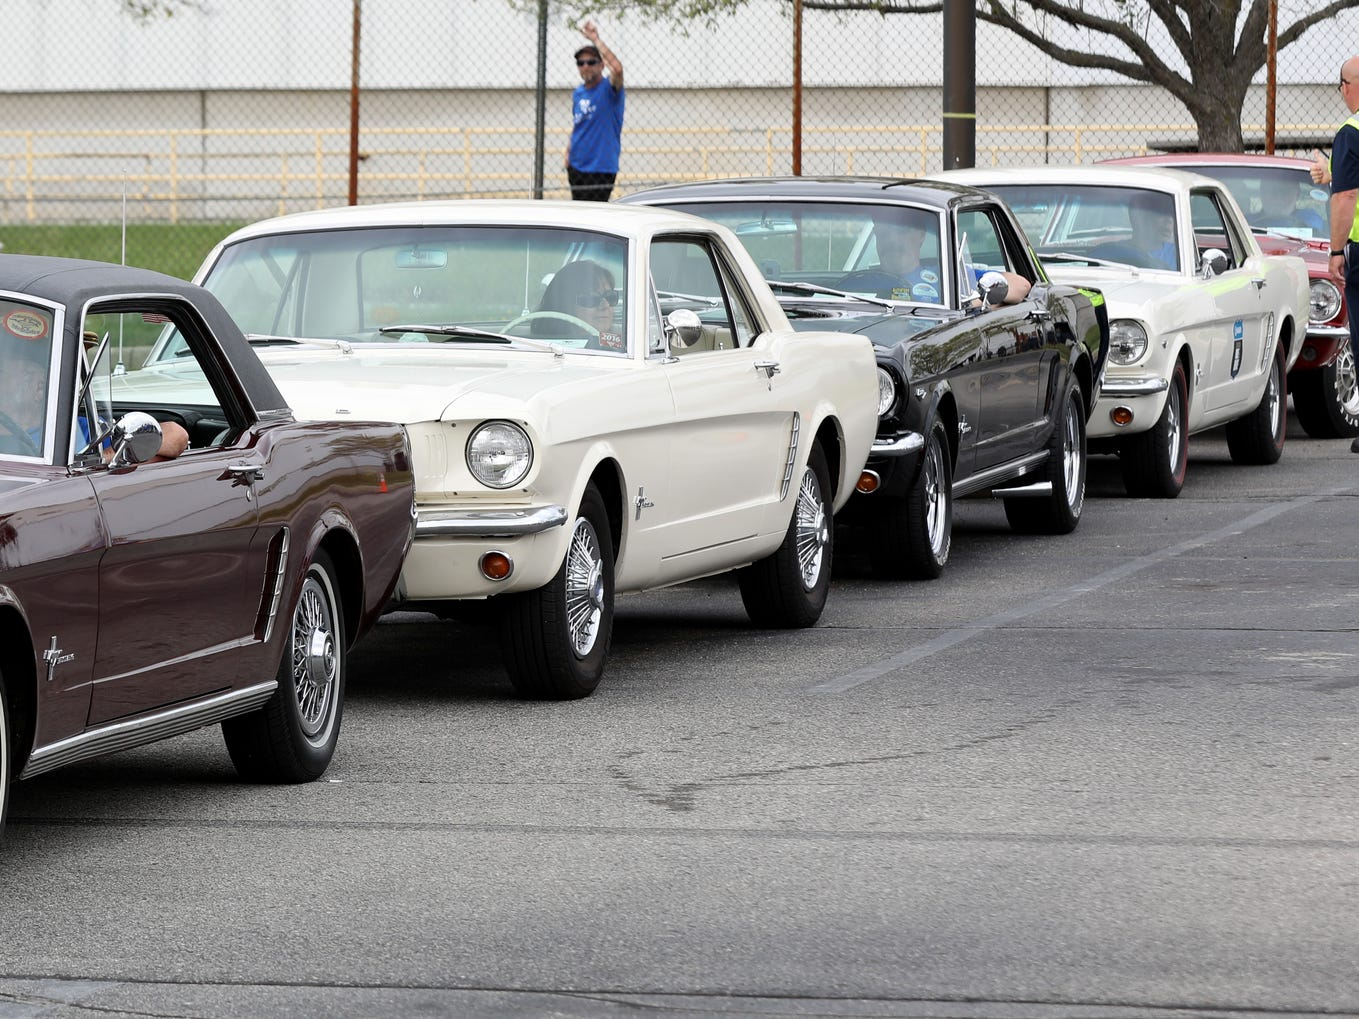 Ford Mustangs from the 1960s line up during the celebration of the 10 millionth Mustang at the Ford Flat Rock assembly plant on Wednesday, Aug. 8, 2018.